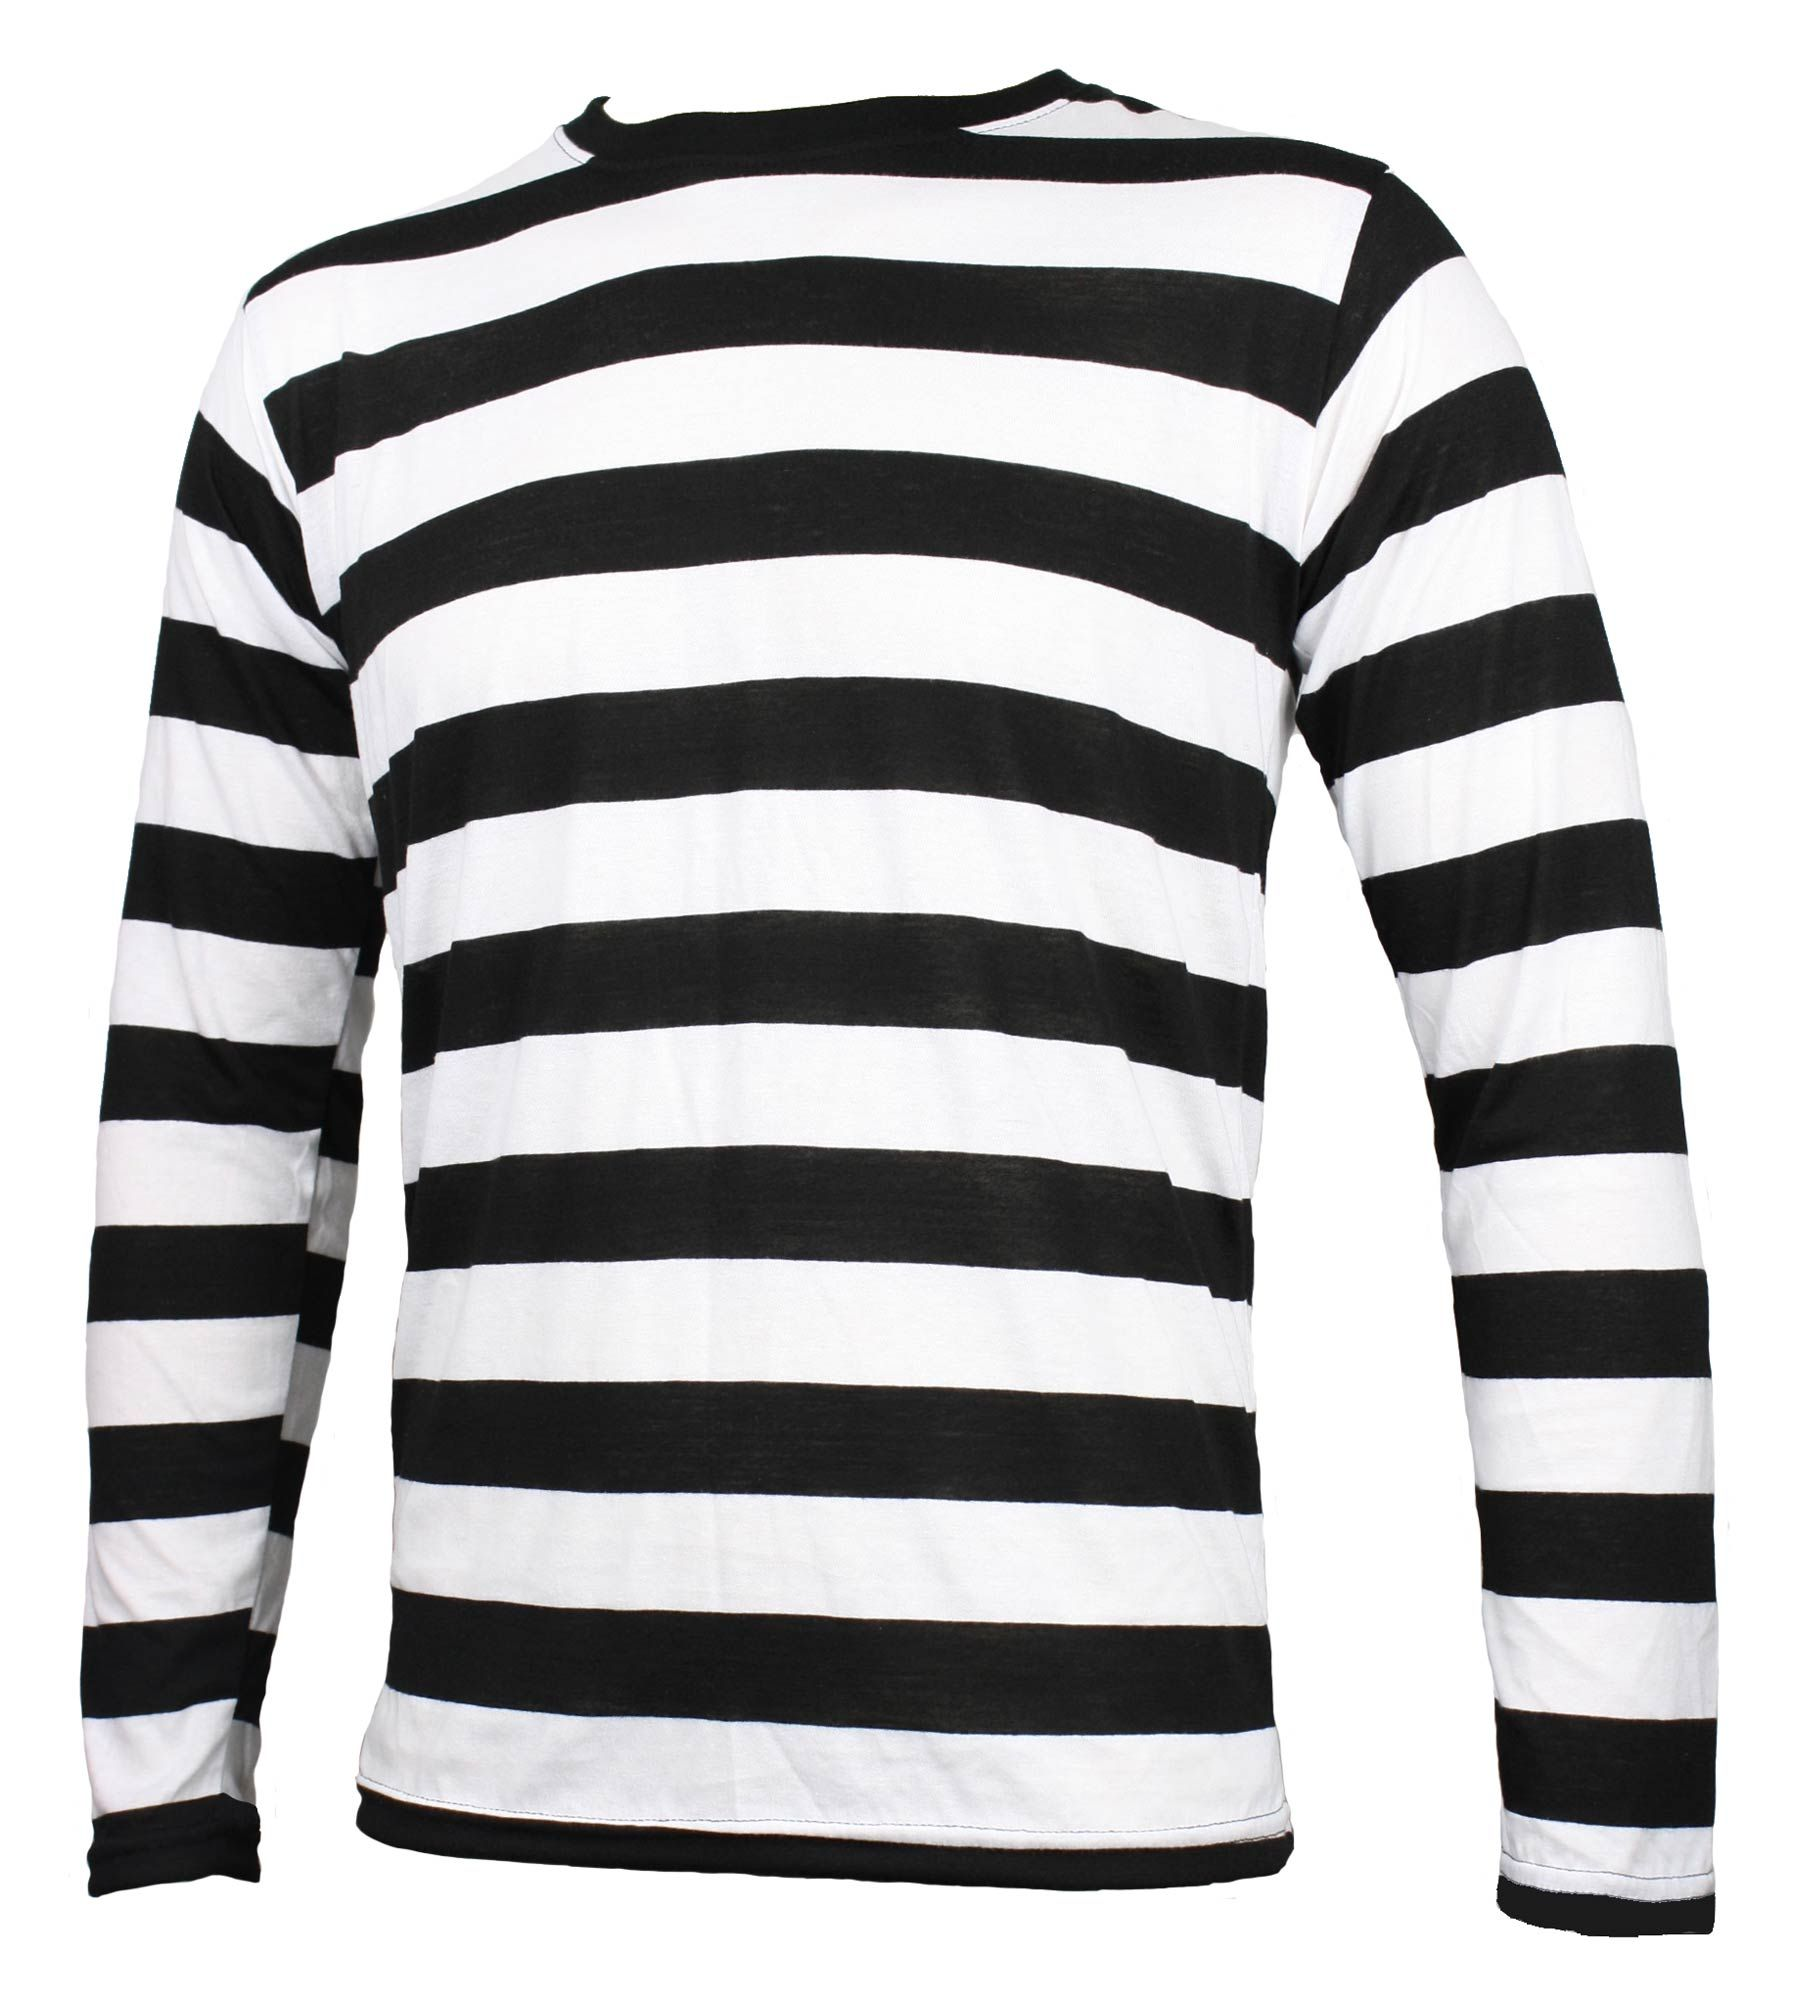 Black t shirt with white stripes - Details About Nyc Long Sleeve Punk Goth Emo Mime Stripe Striped Shirt Black White S M L Xl